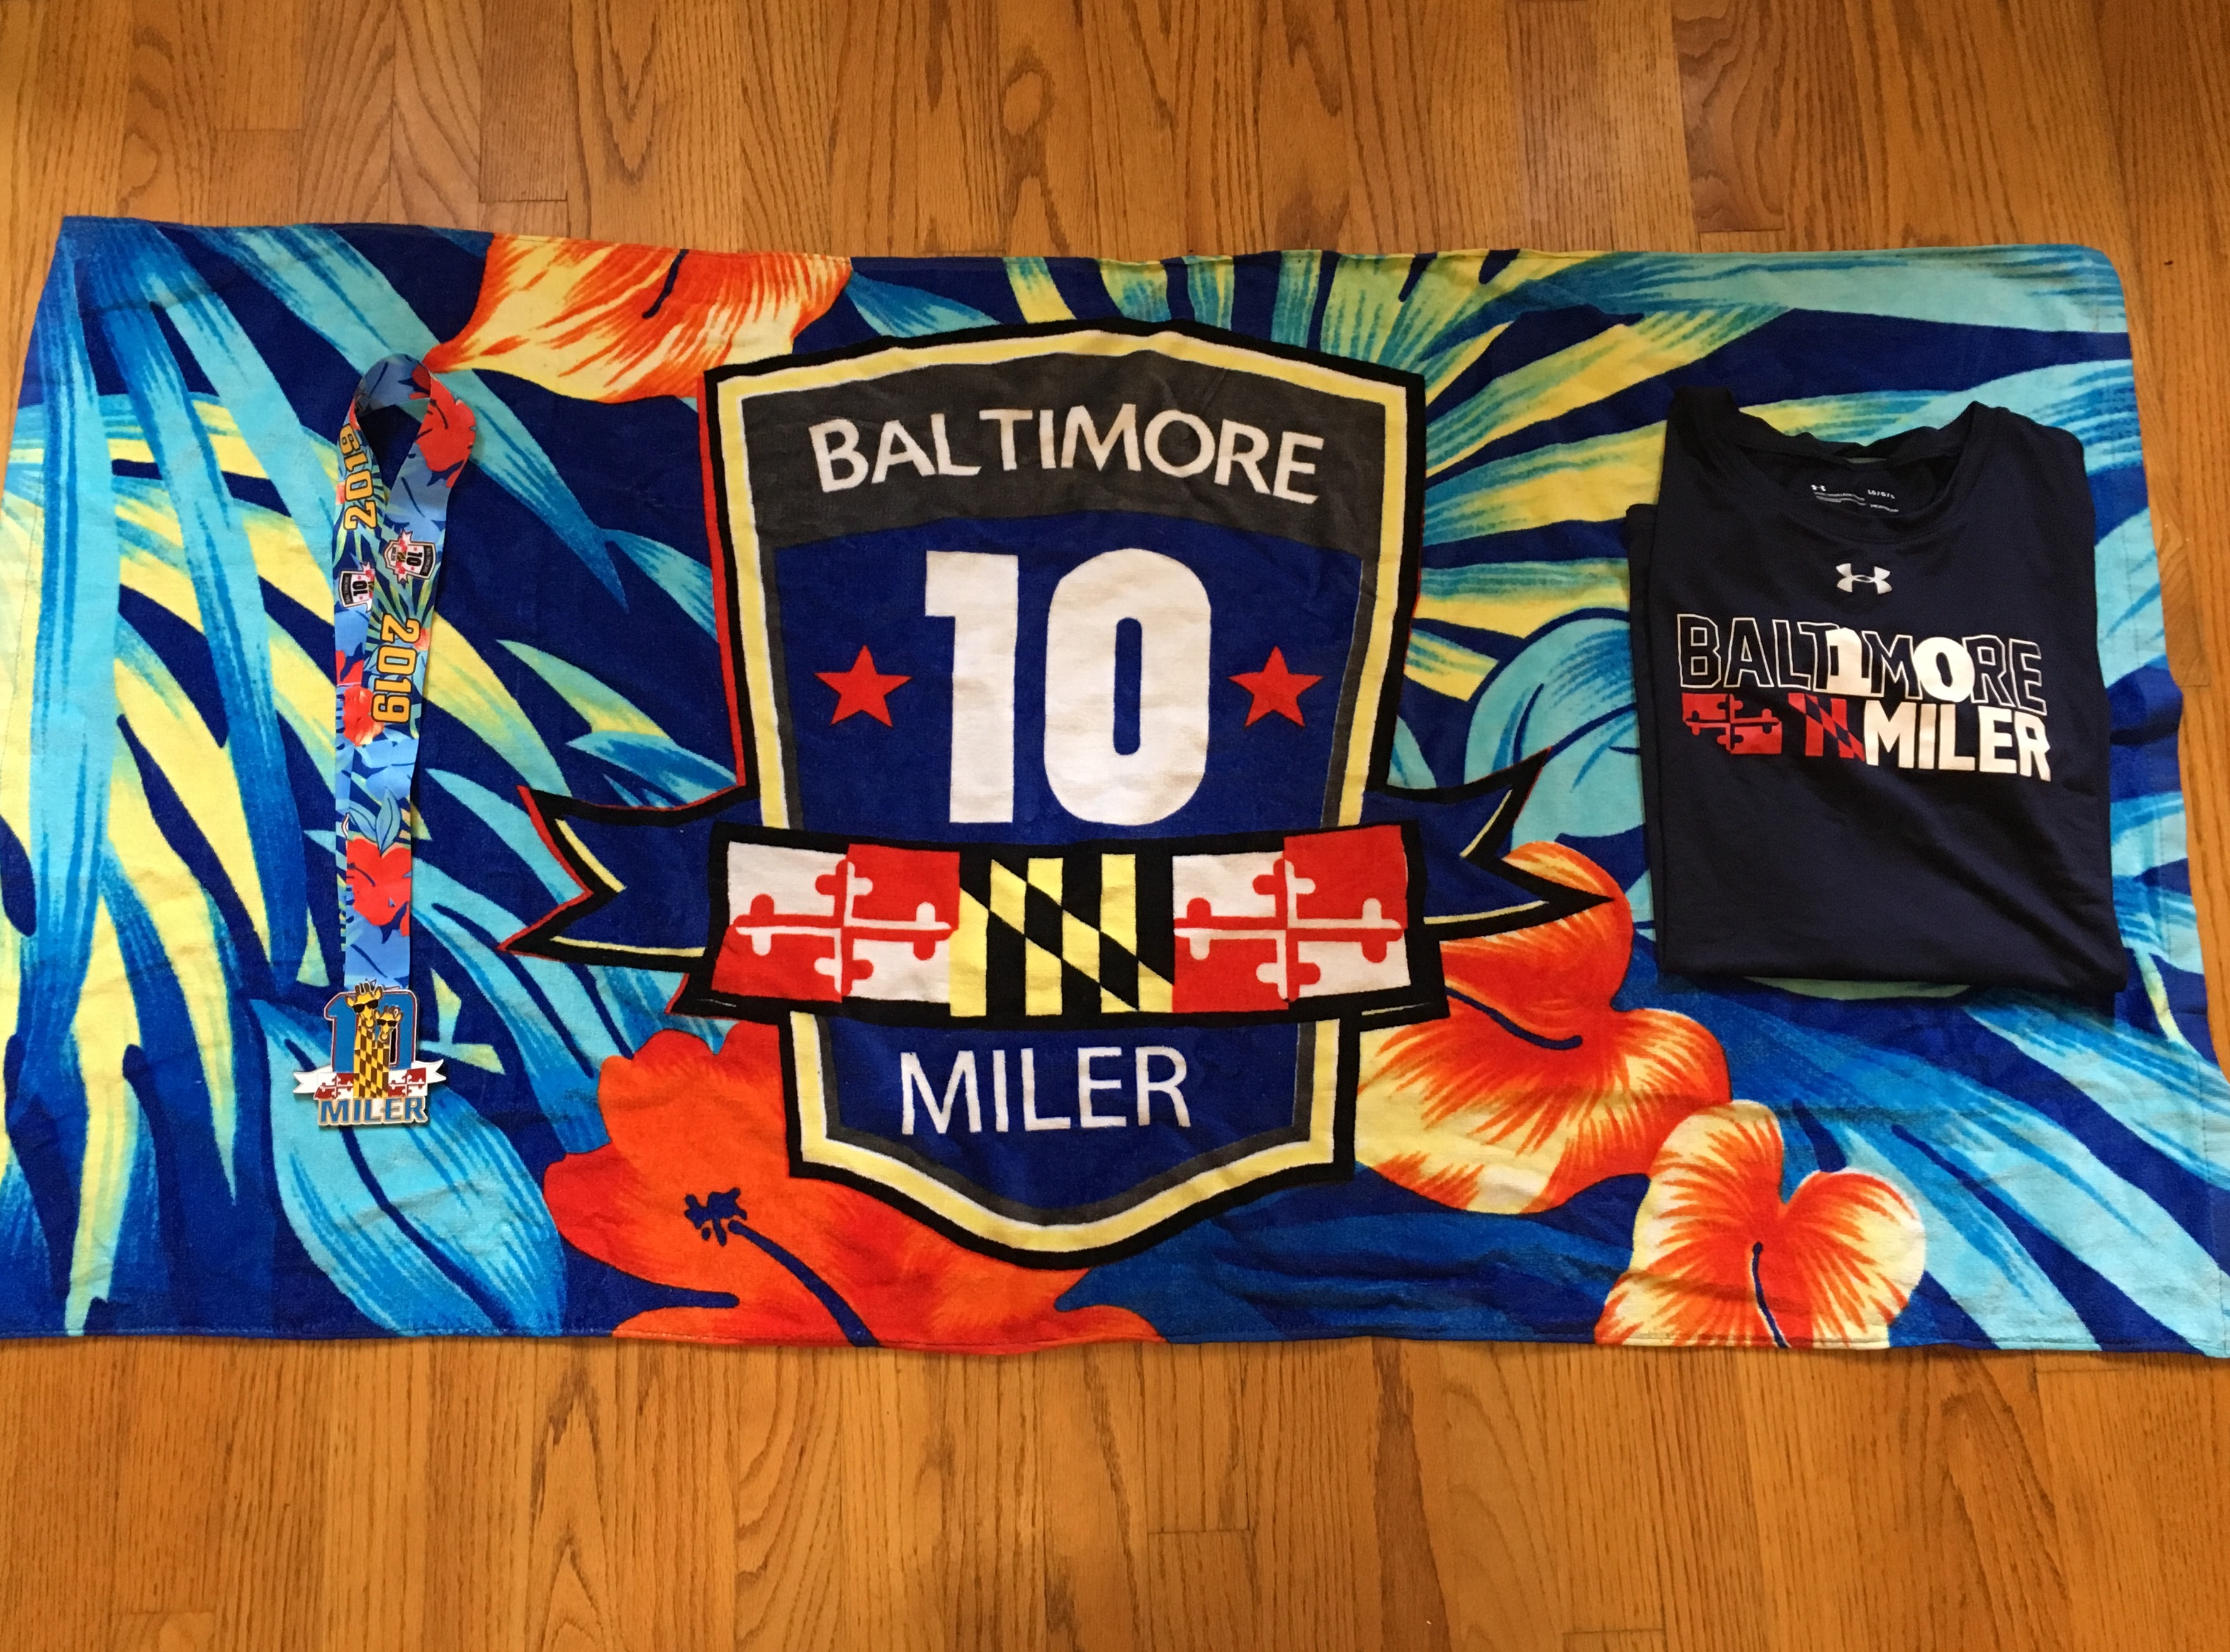 Baltimore 10 Miler swag: Beach towel, shirt and medal